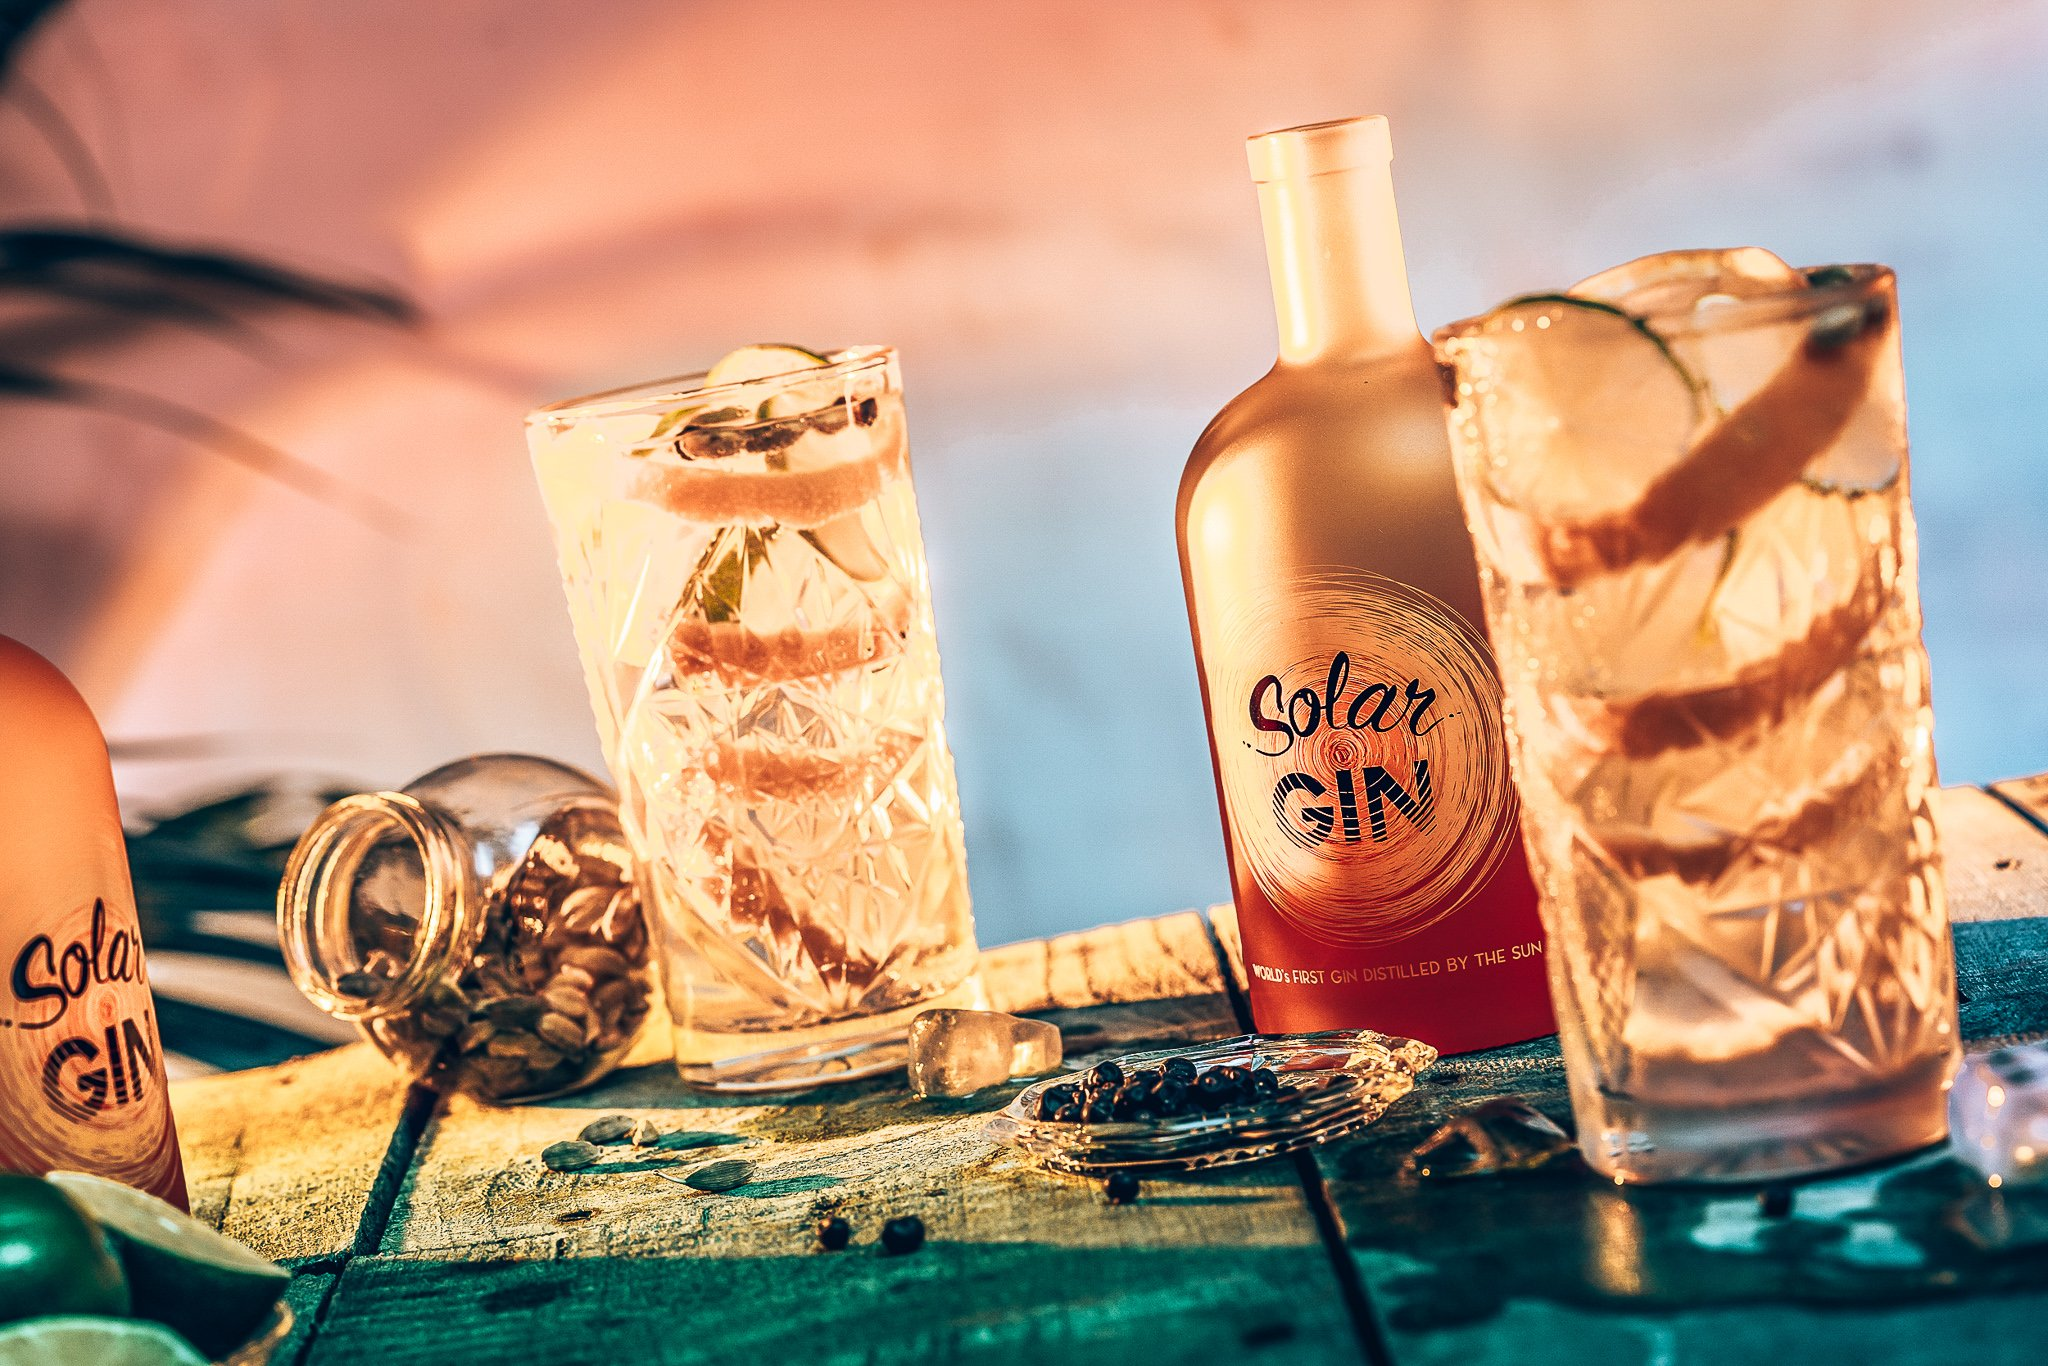 Perfect serve Solar Gin, Alles over gin.